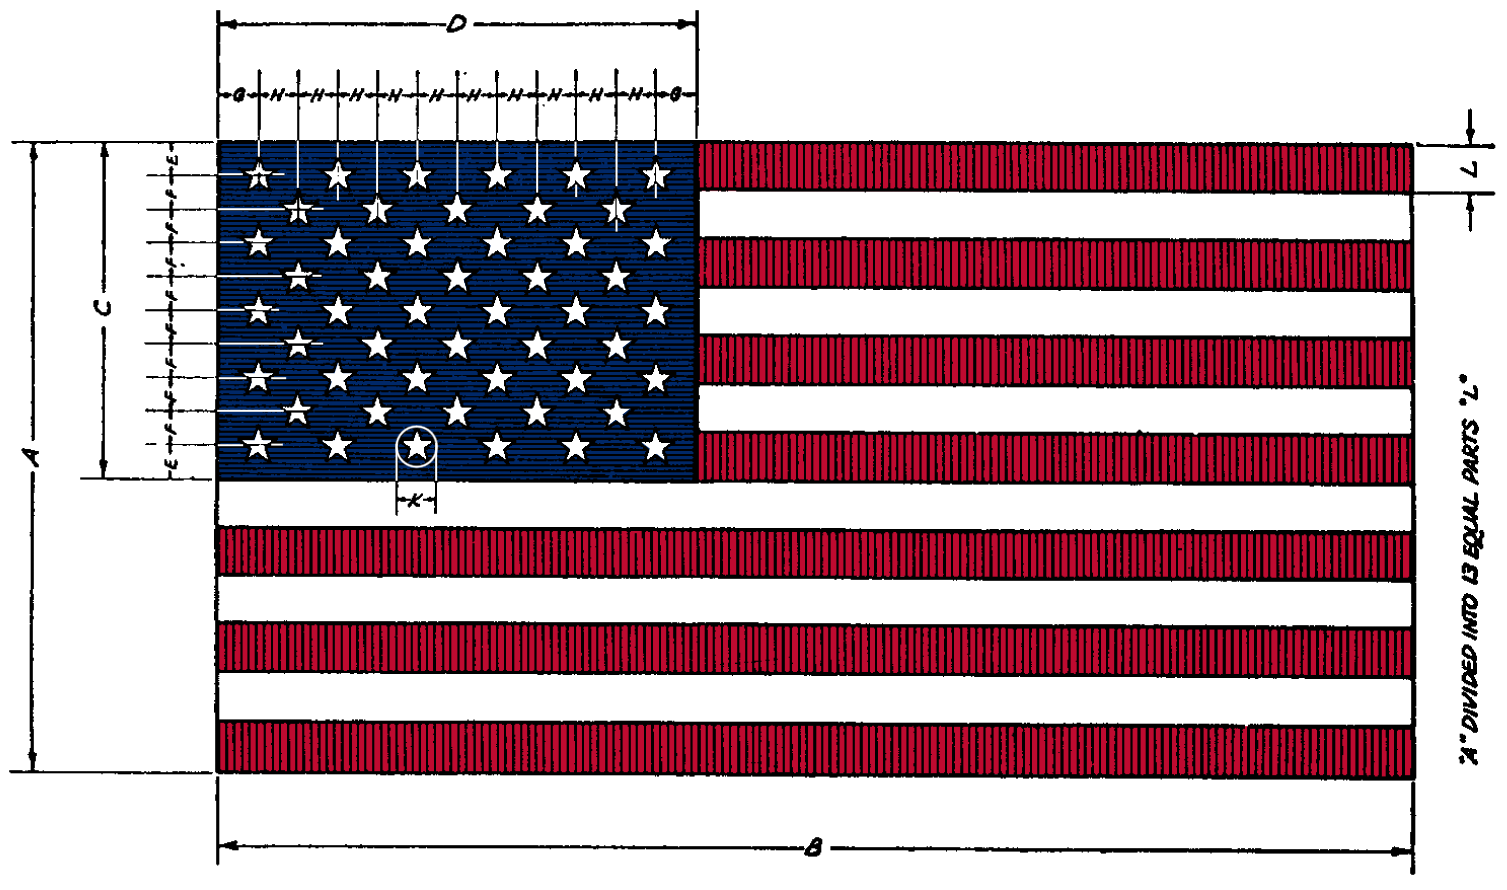 USFlag.org: A website dedicated to the Flag of the United States